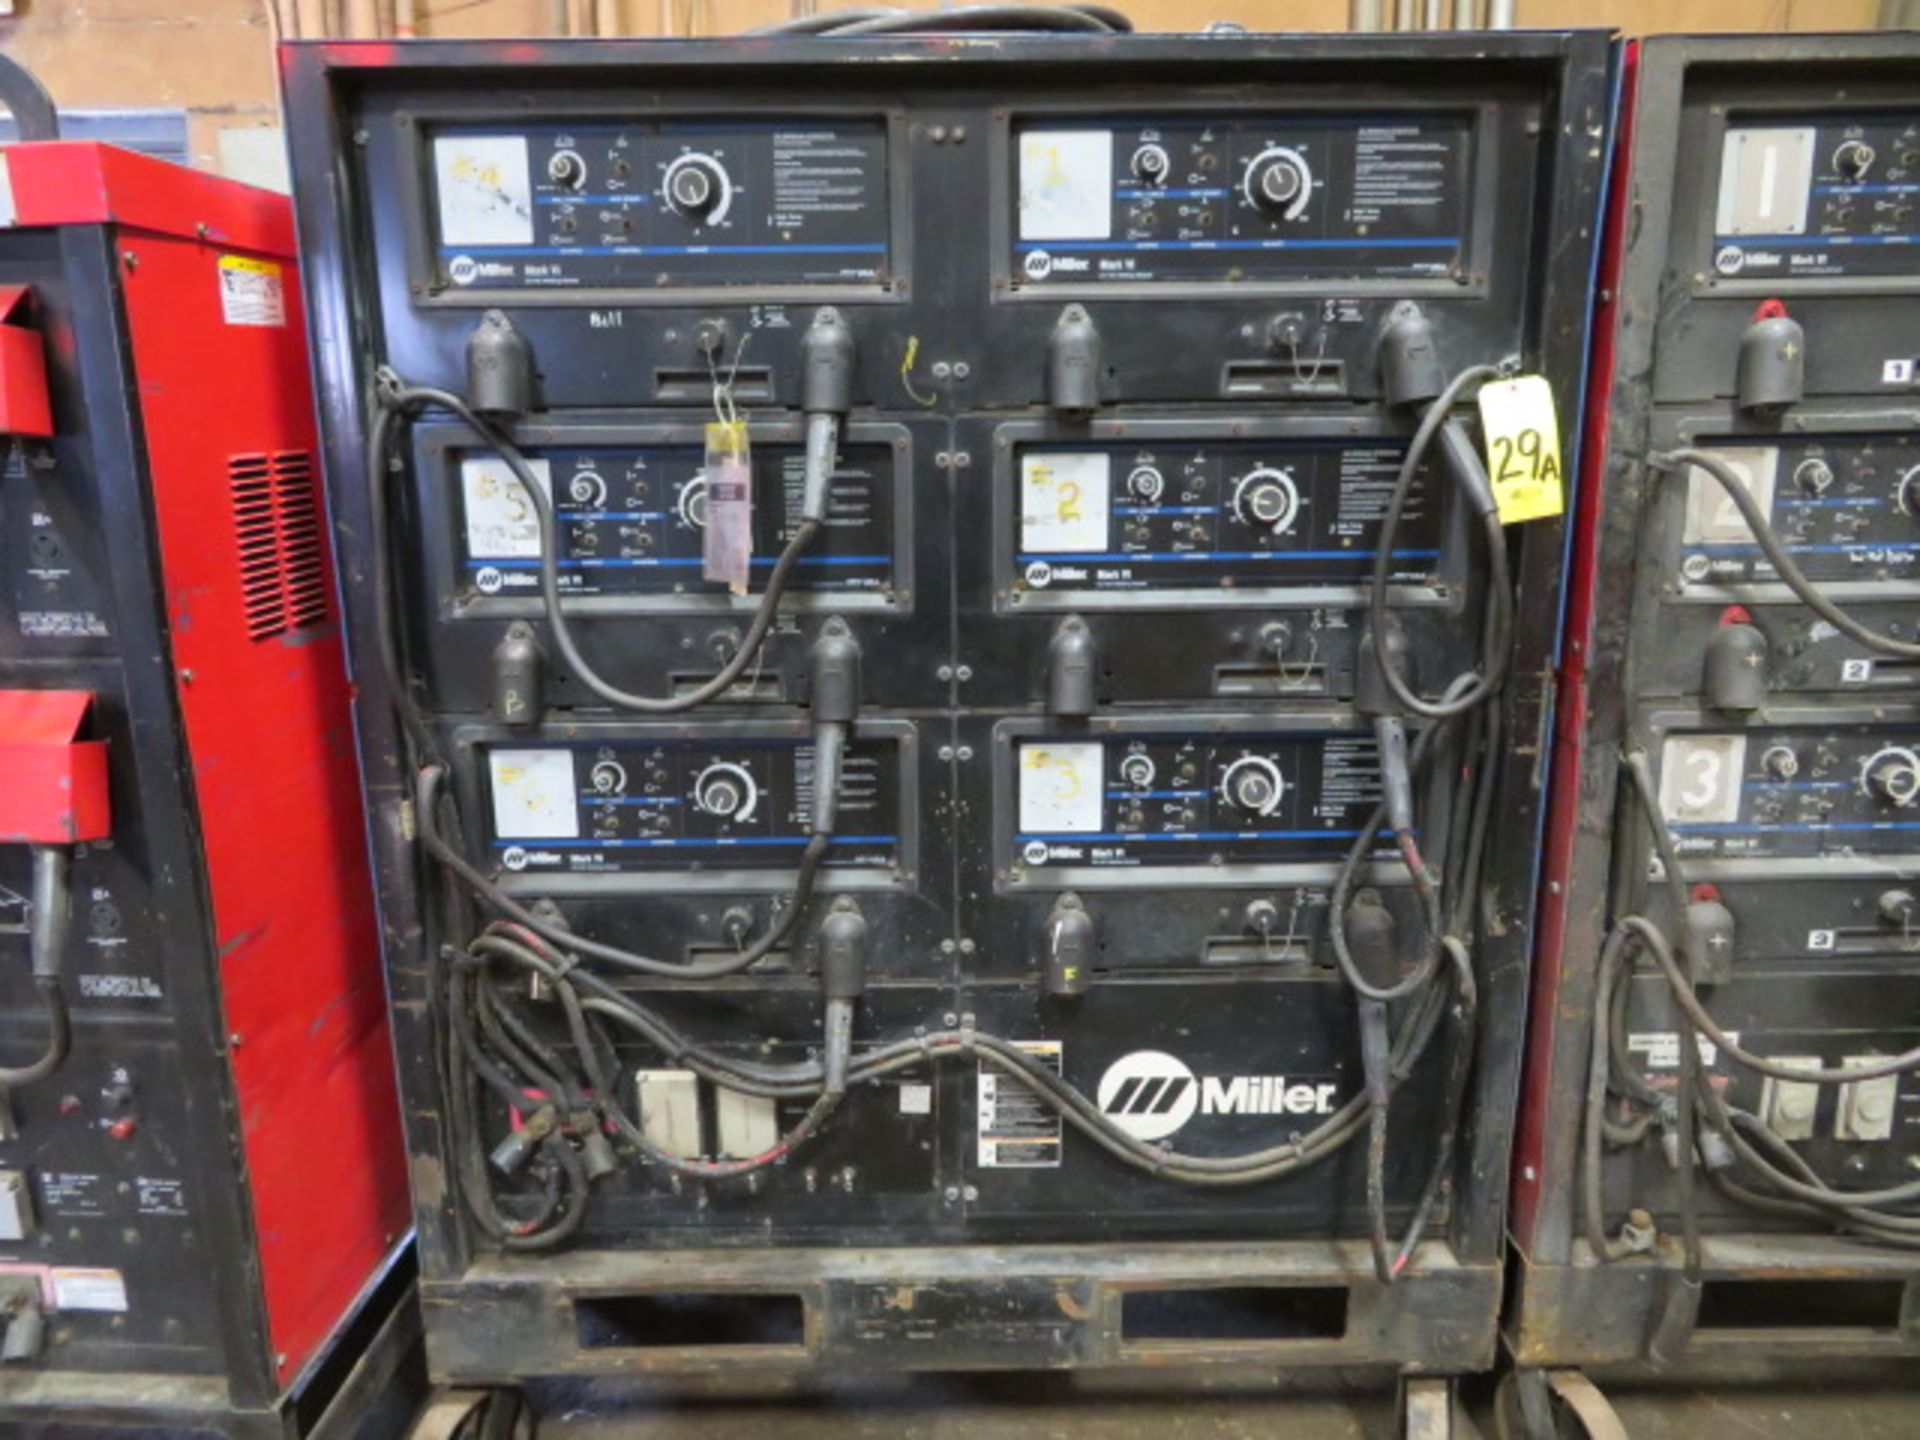 Lot 29A - 2000 MILLER MARK VI 6-MODULE MULTIPLE OPERATER CC/DC MIG WELDER 2000 MILLER MARK VI 6-MODULE